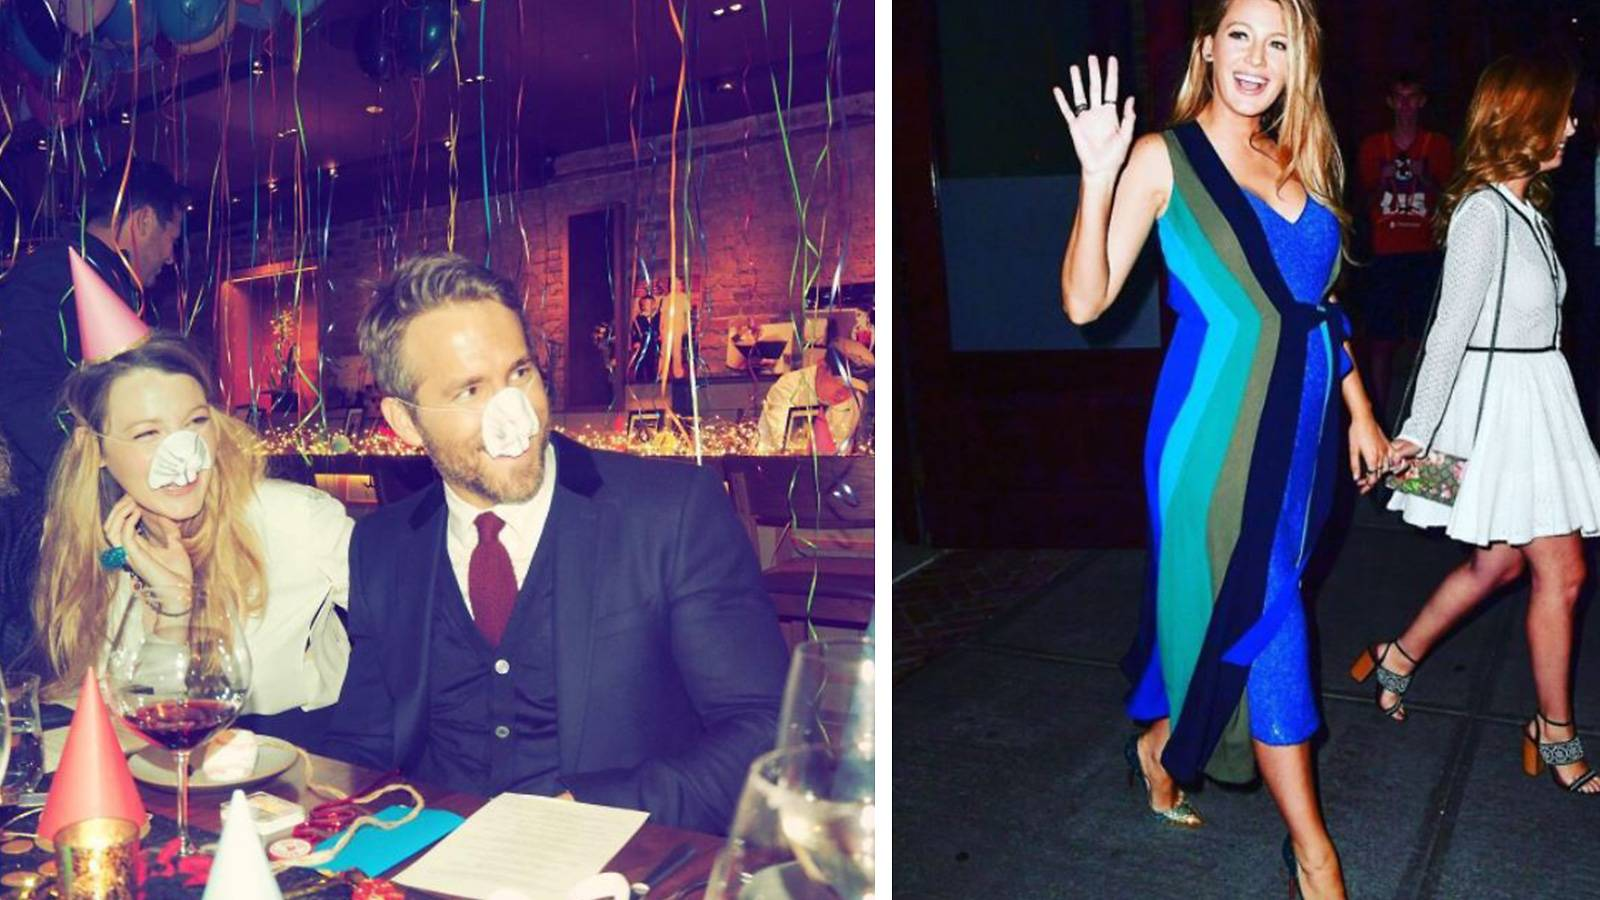 9. Ryan Reynolds and Blake Lively